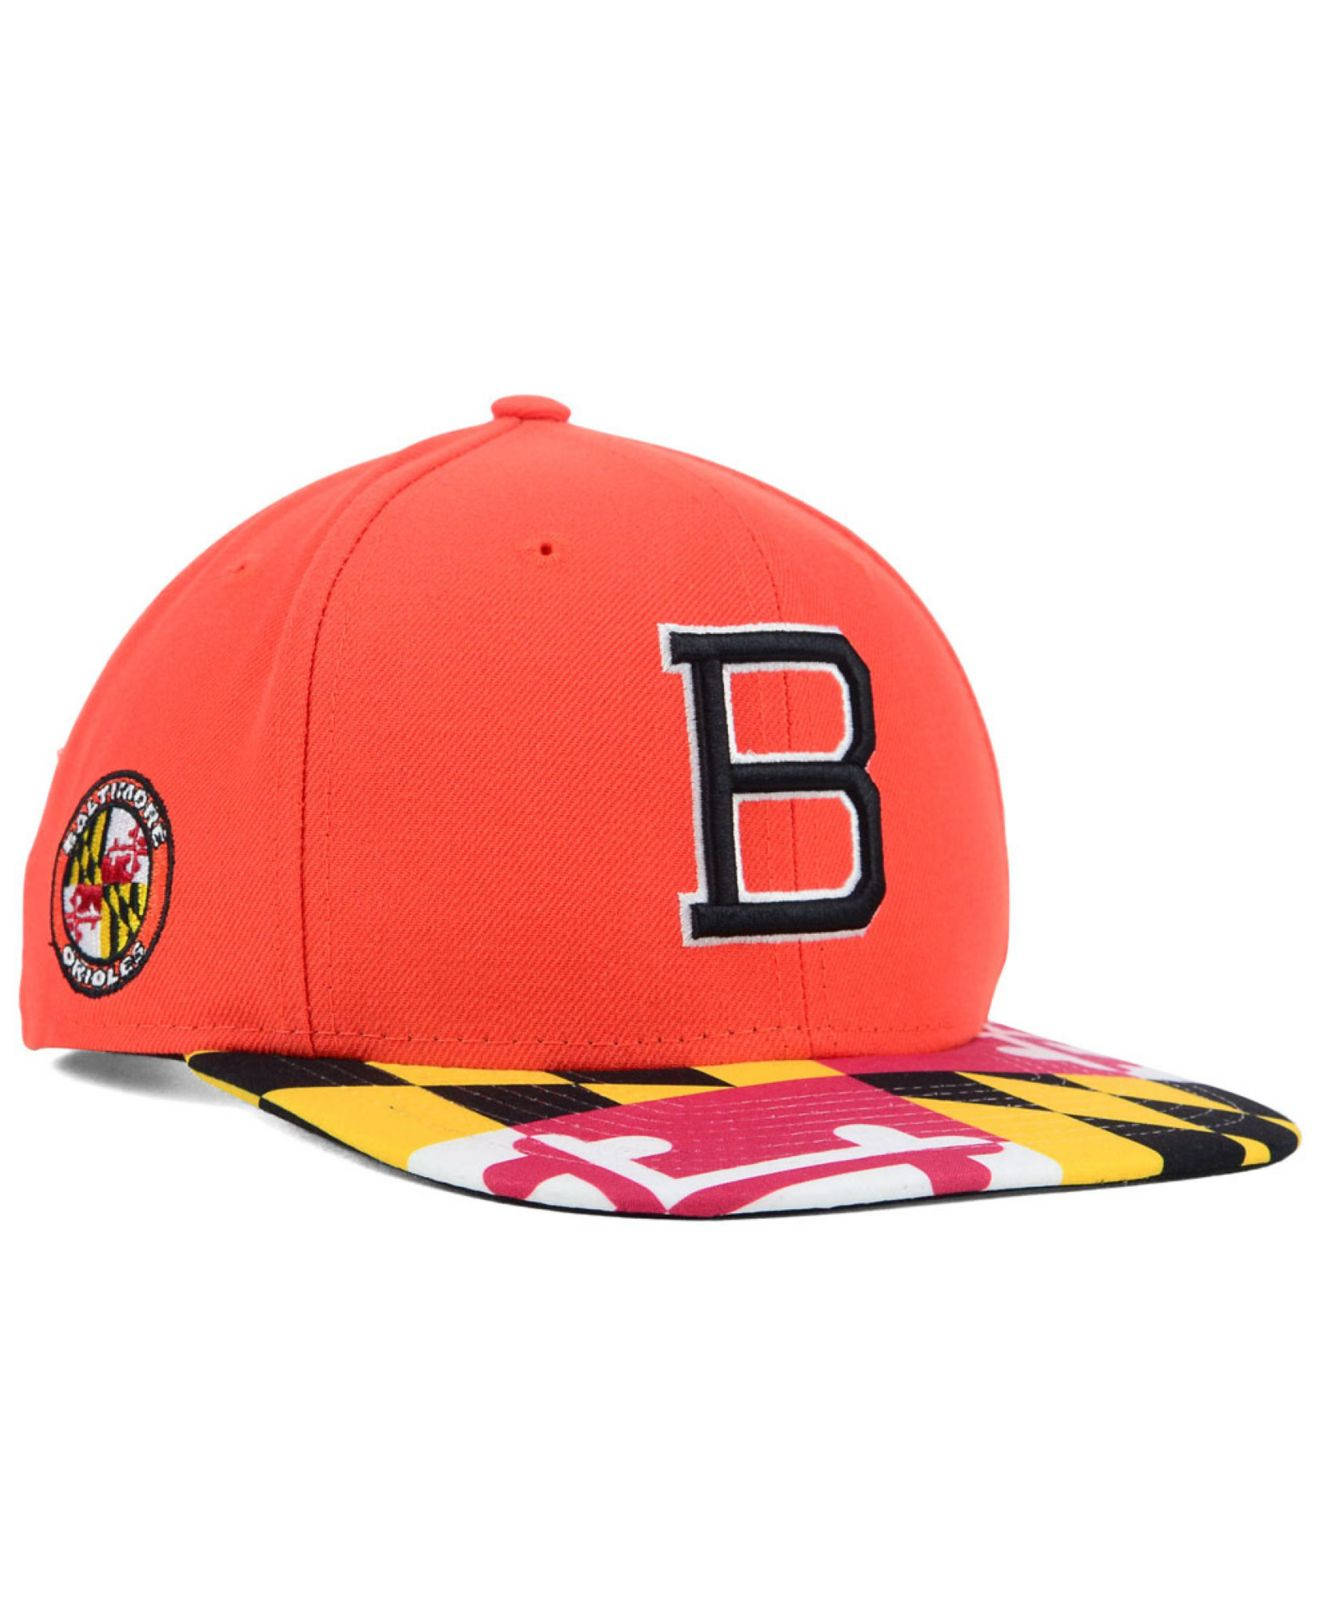 meet e1abe bfe85 ... germany lyst ktz baltimore orioles flag up 9fifty snapback cap in  orange 189bd 31d40